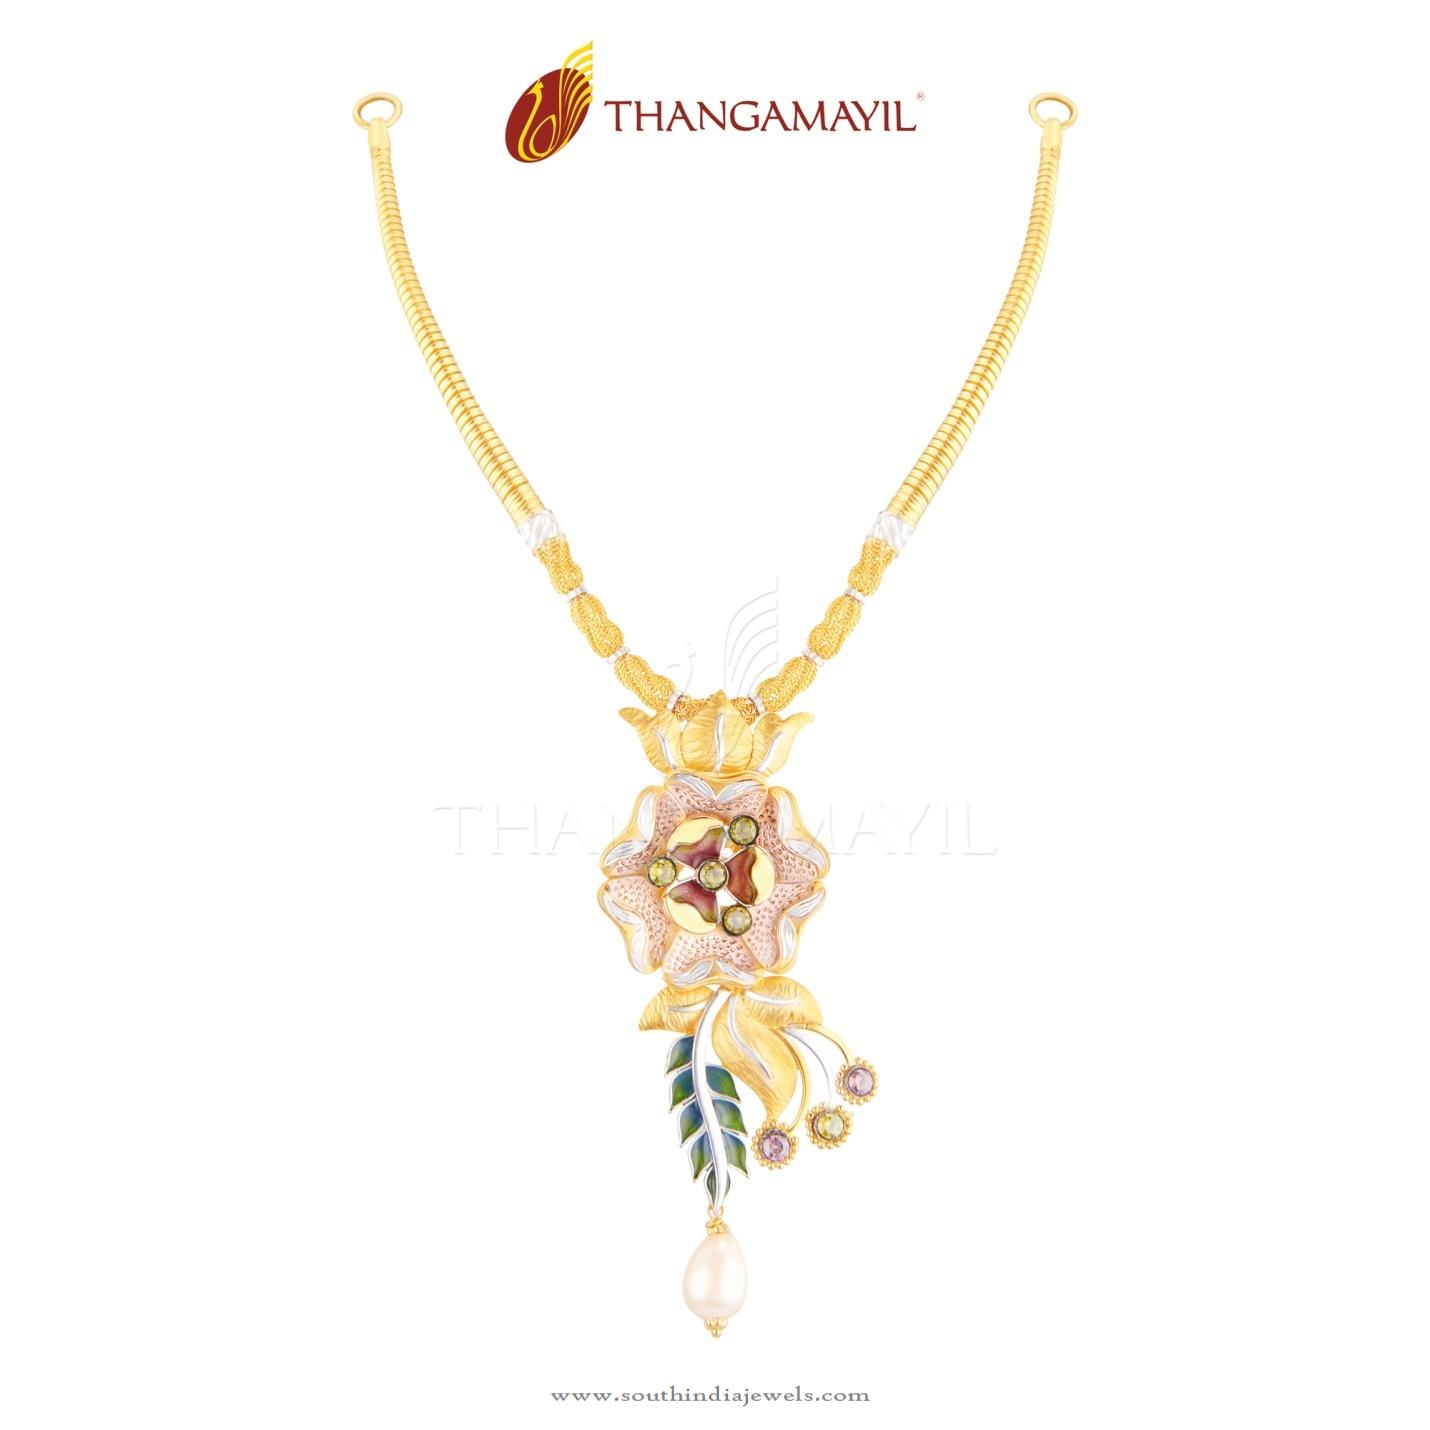 22kt Necklace Design From Thangamayil Jewellery South India Jewels